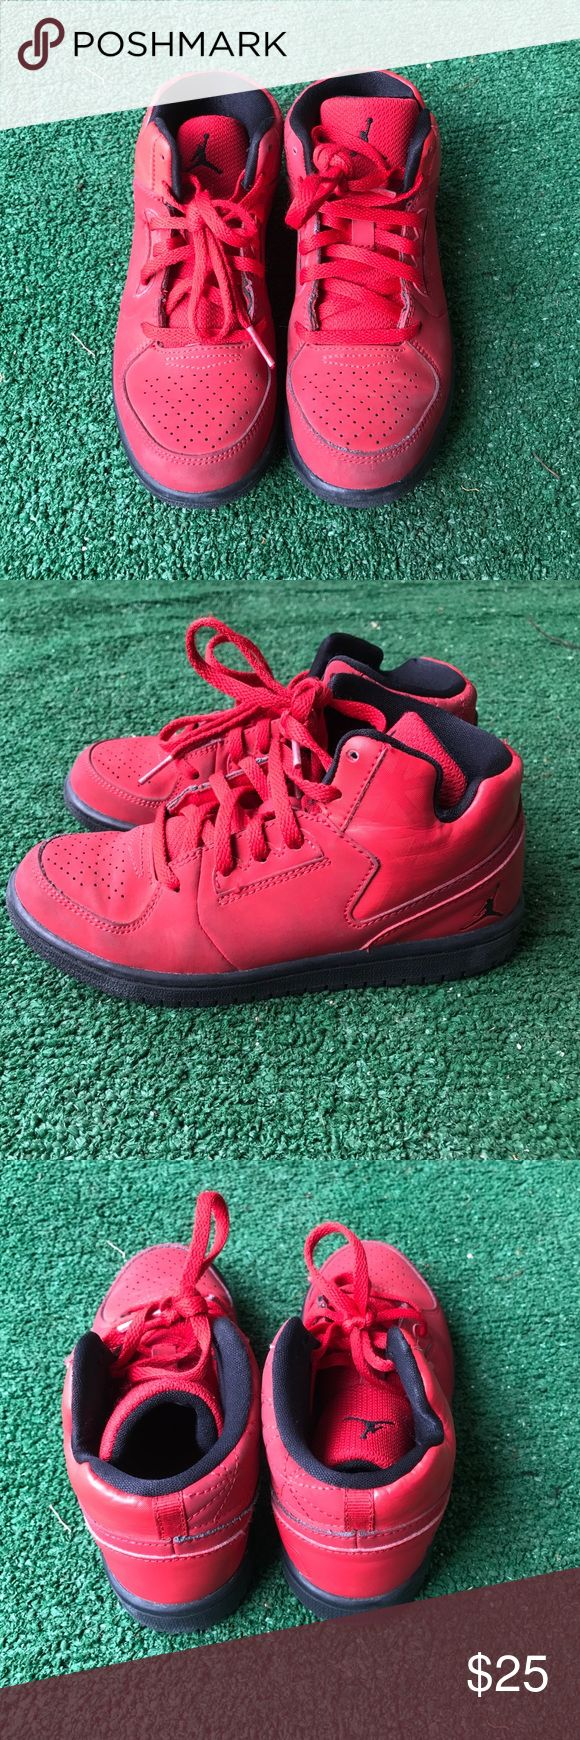 Kids Jordan shoes size 13C Red and black, clean like brand new size 13C for child Jordan Shoes Sneakers